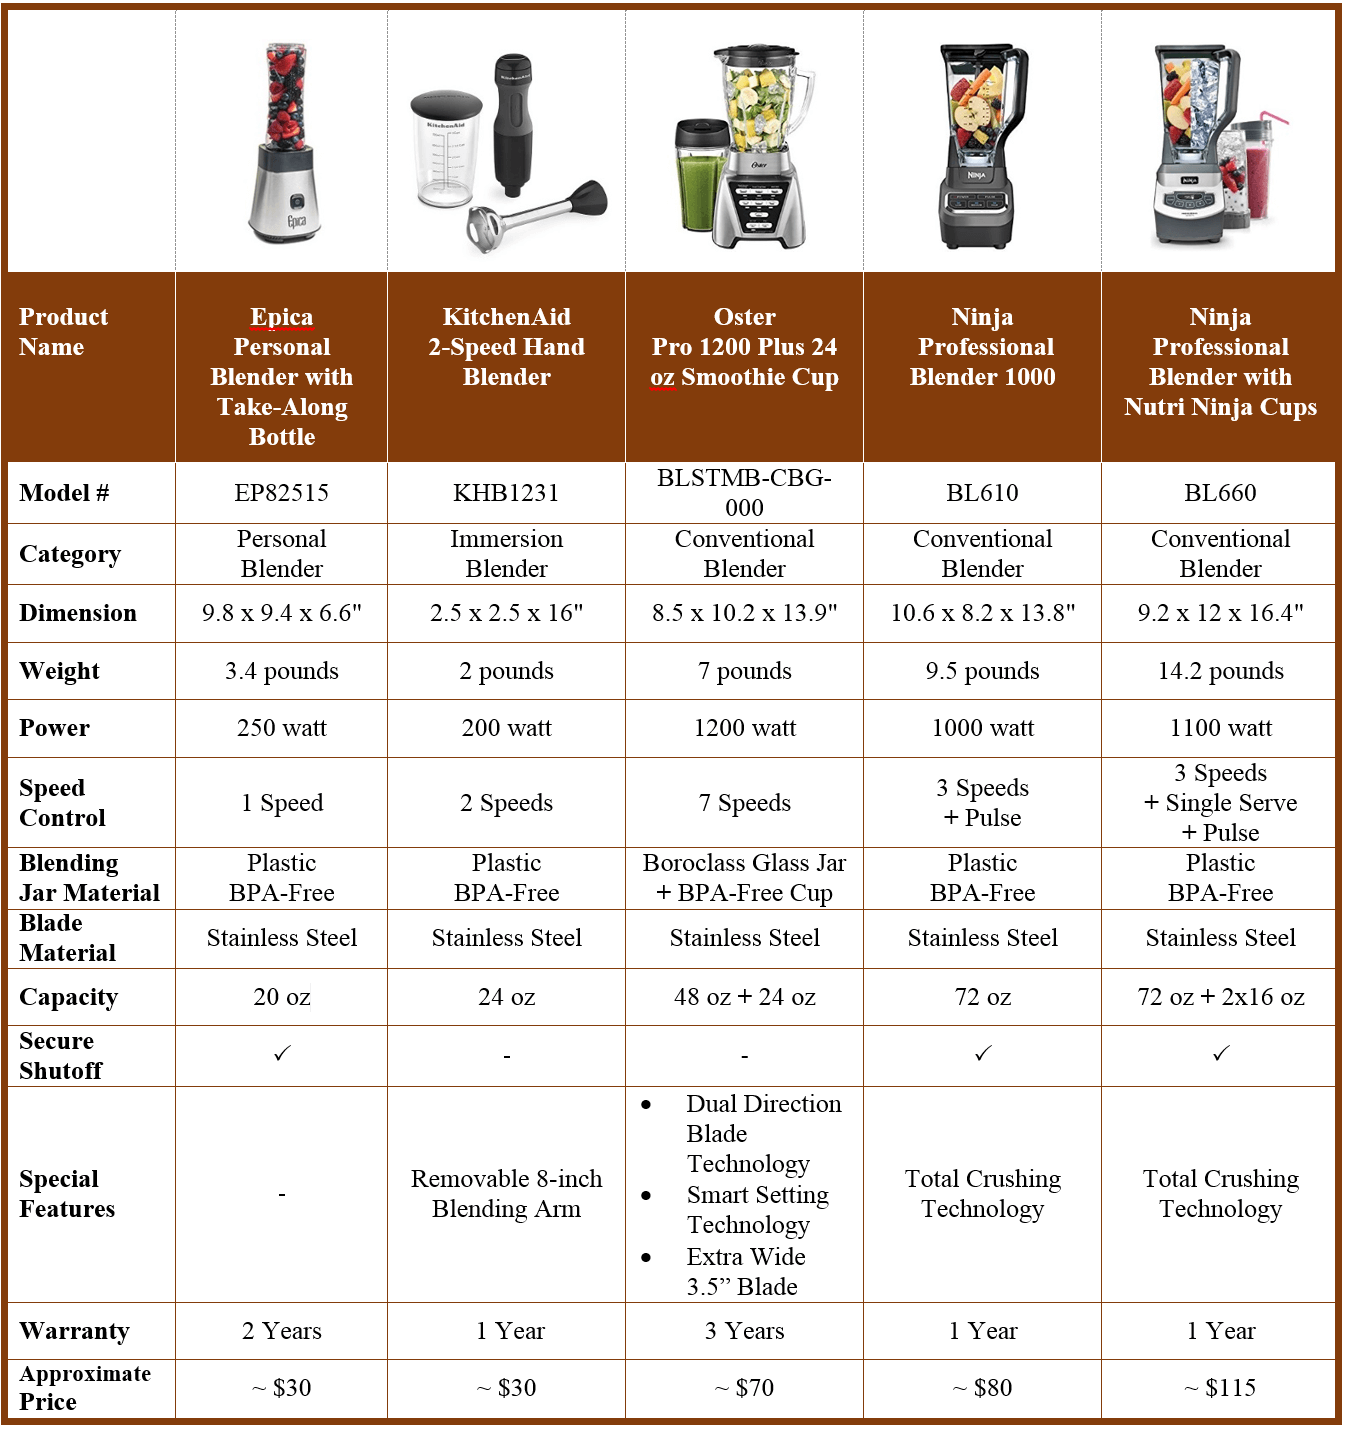 Blenders Review - At One Glance